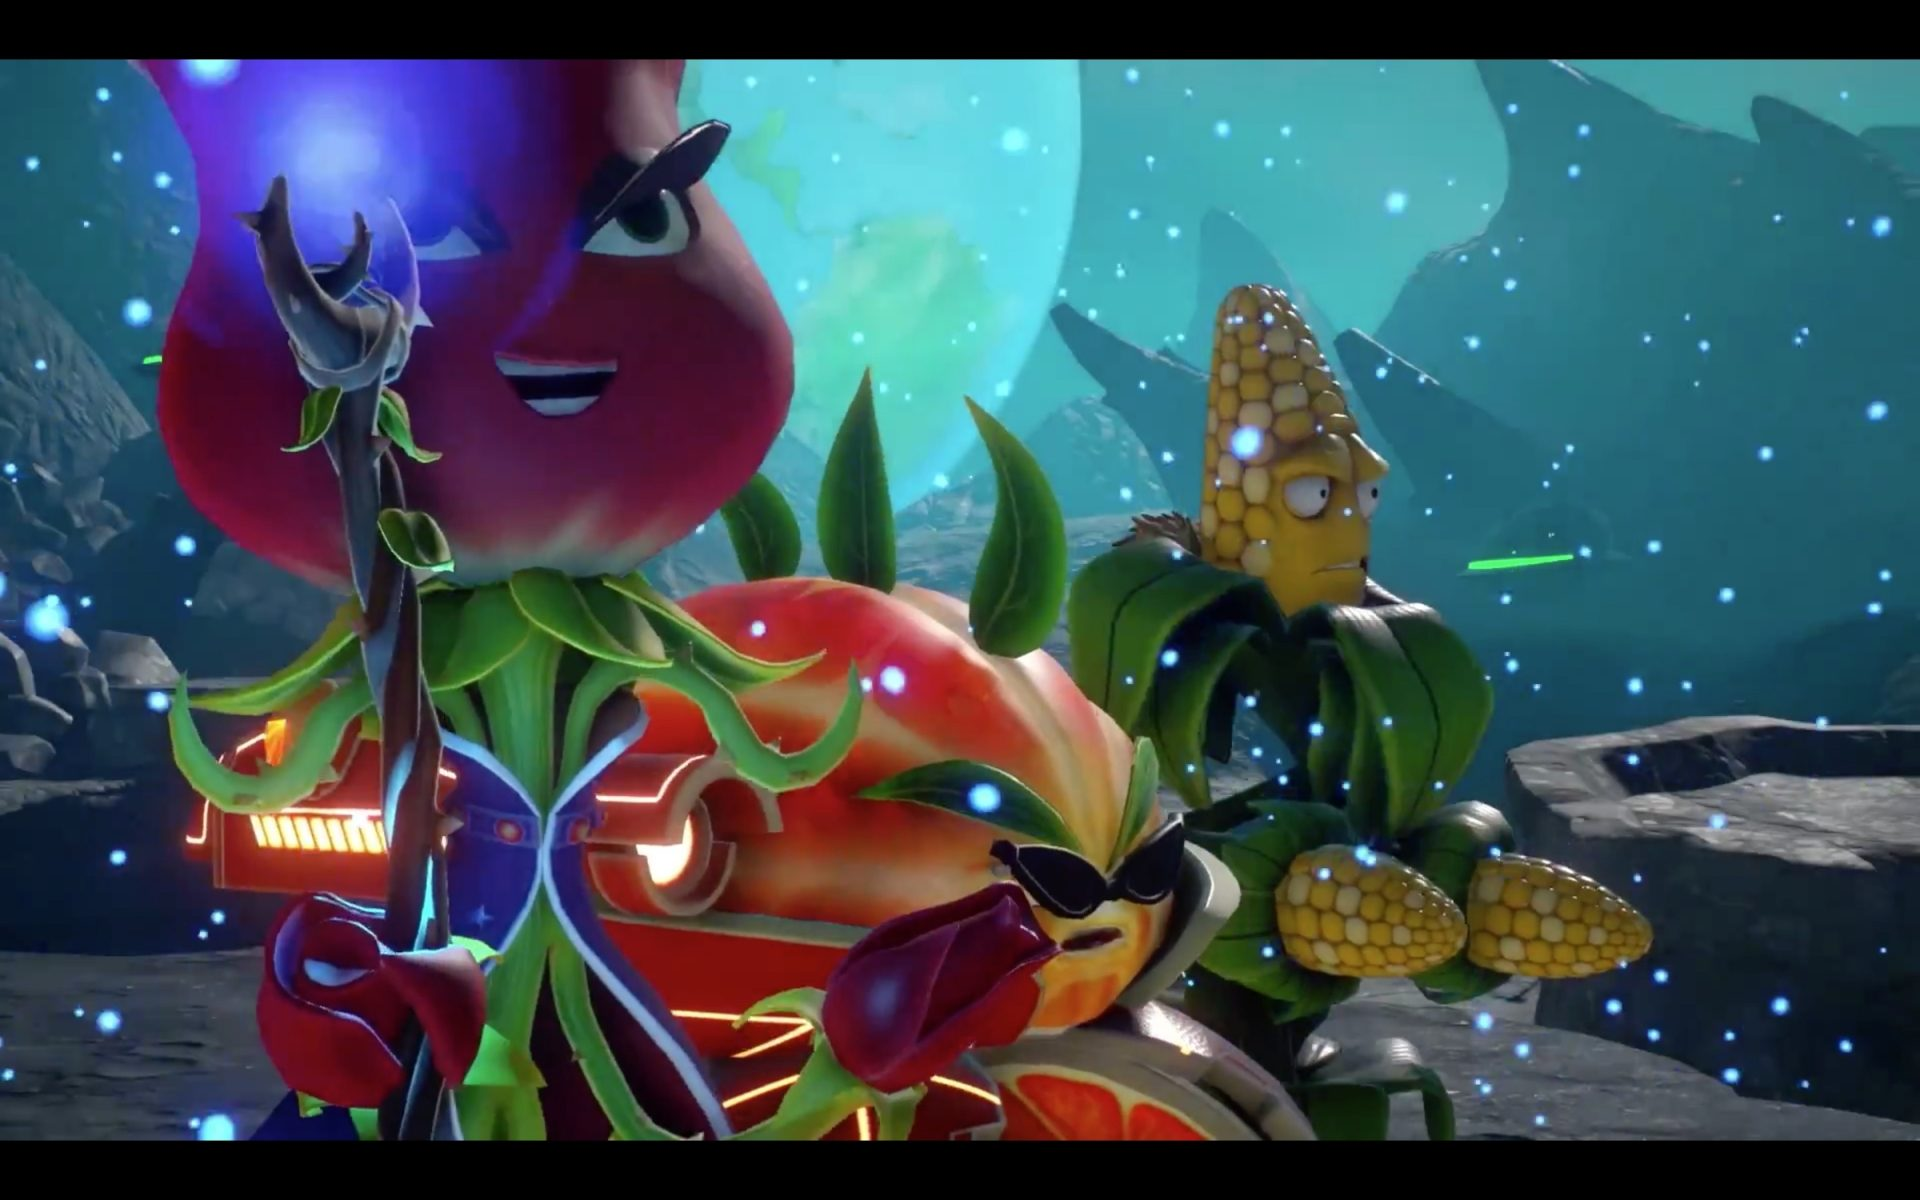 Plants vs zombies garden warfare 2 - Plants vs zombies garden warfare 2 review ...